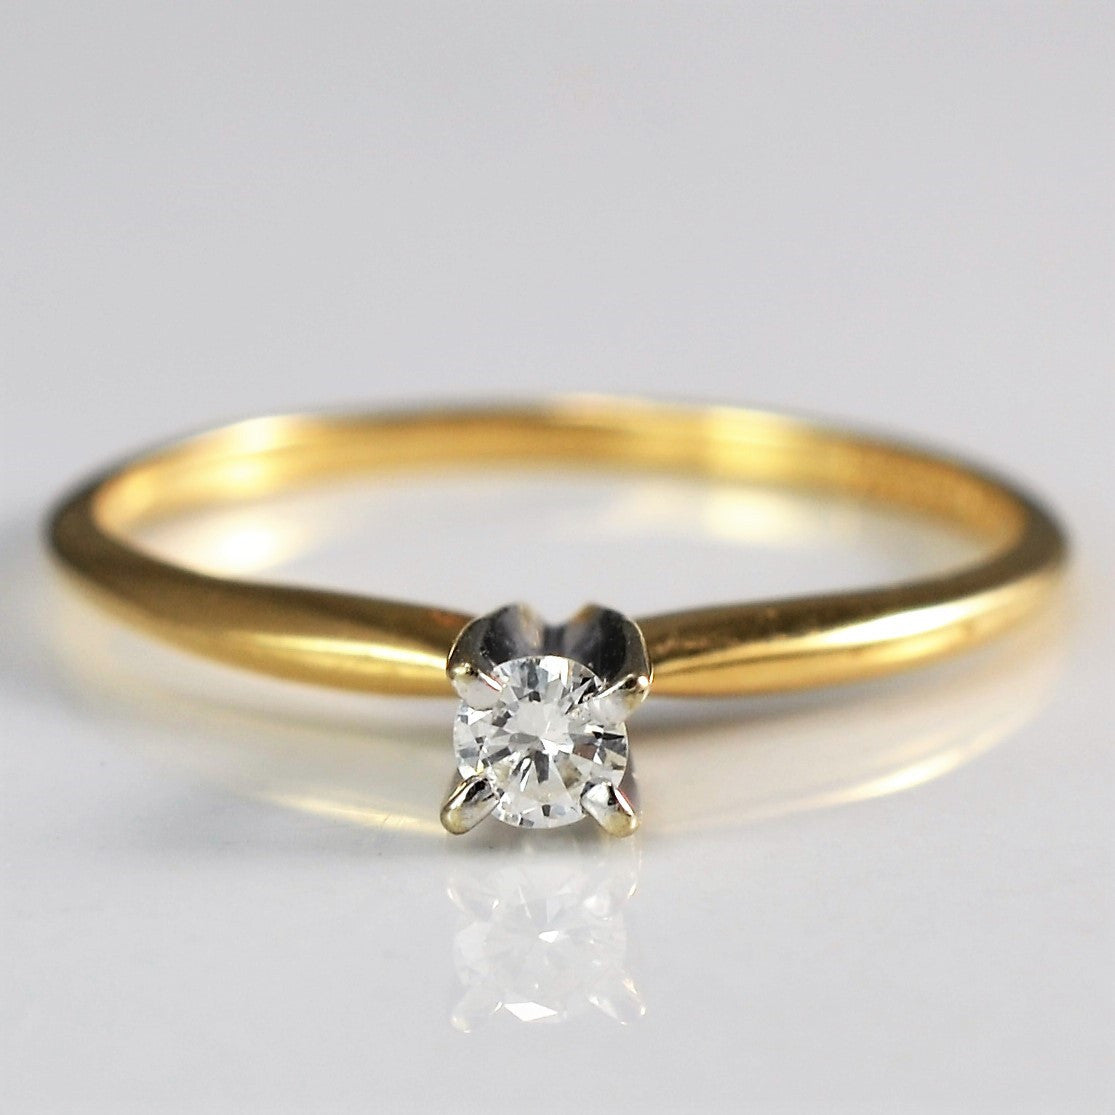 High Set Thin Tapered Diamond Solitaire | 0.08 ct, SZ 5.75 |